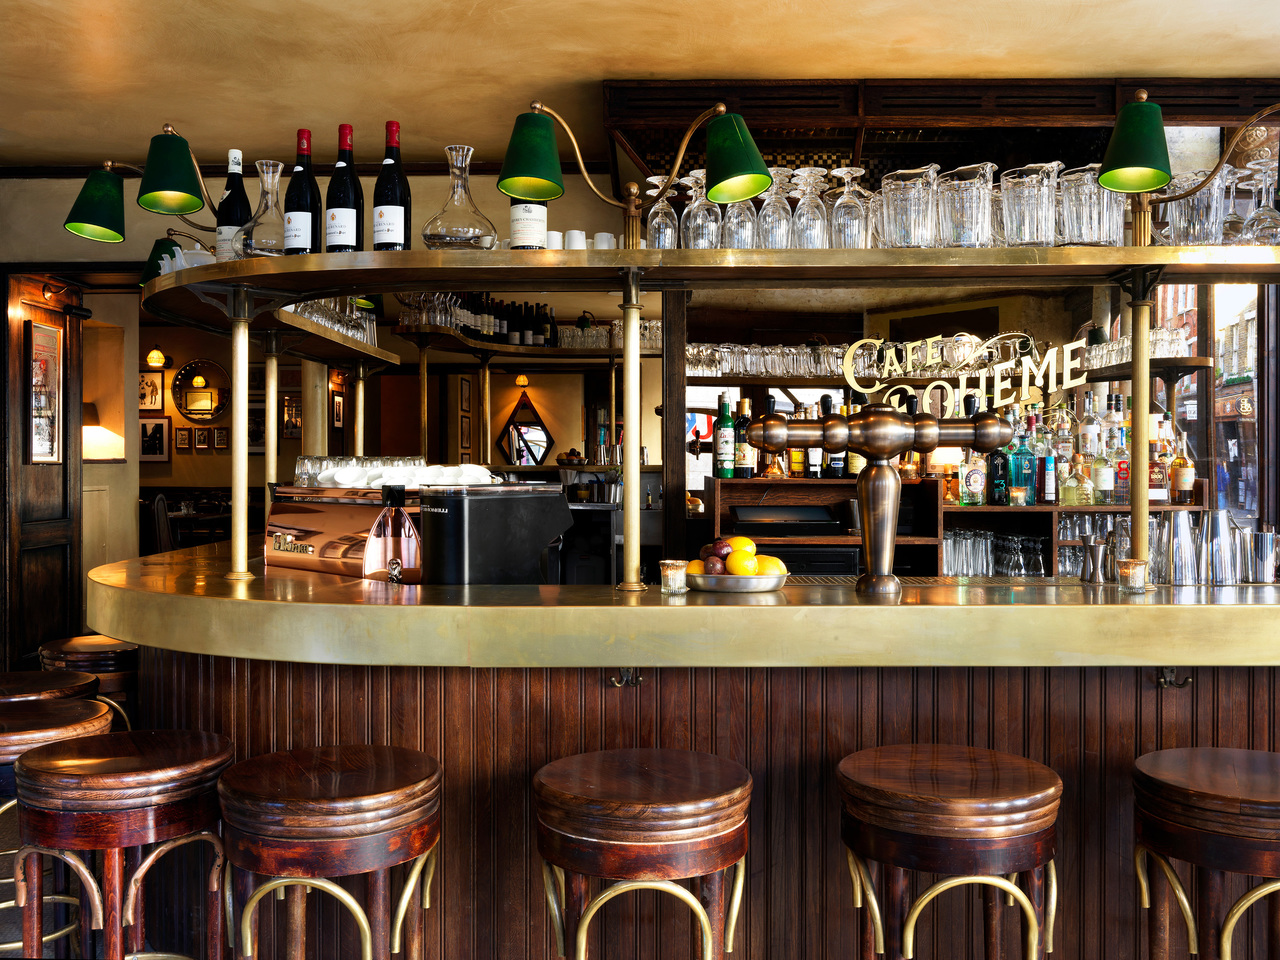 Copyright soho house cafe boheme interiors 1801 sb lr 004